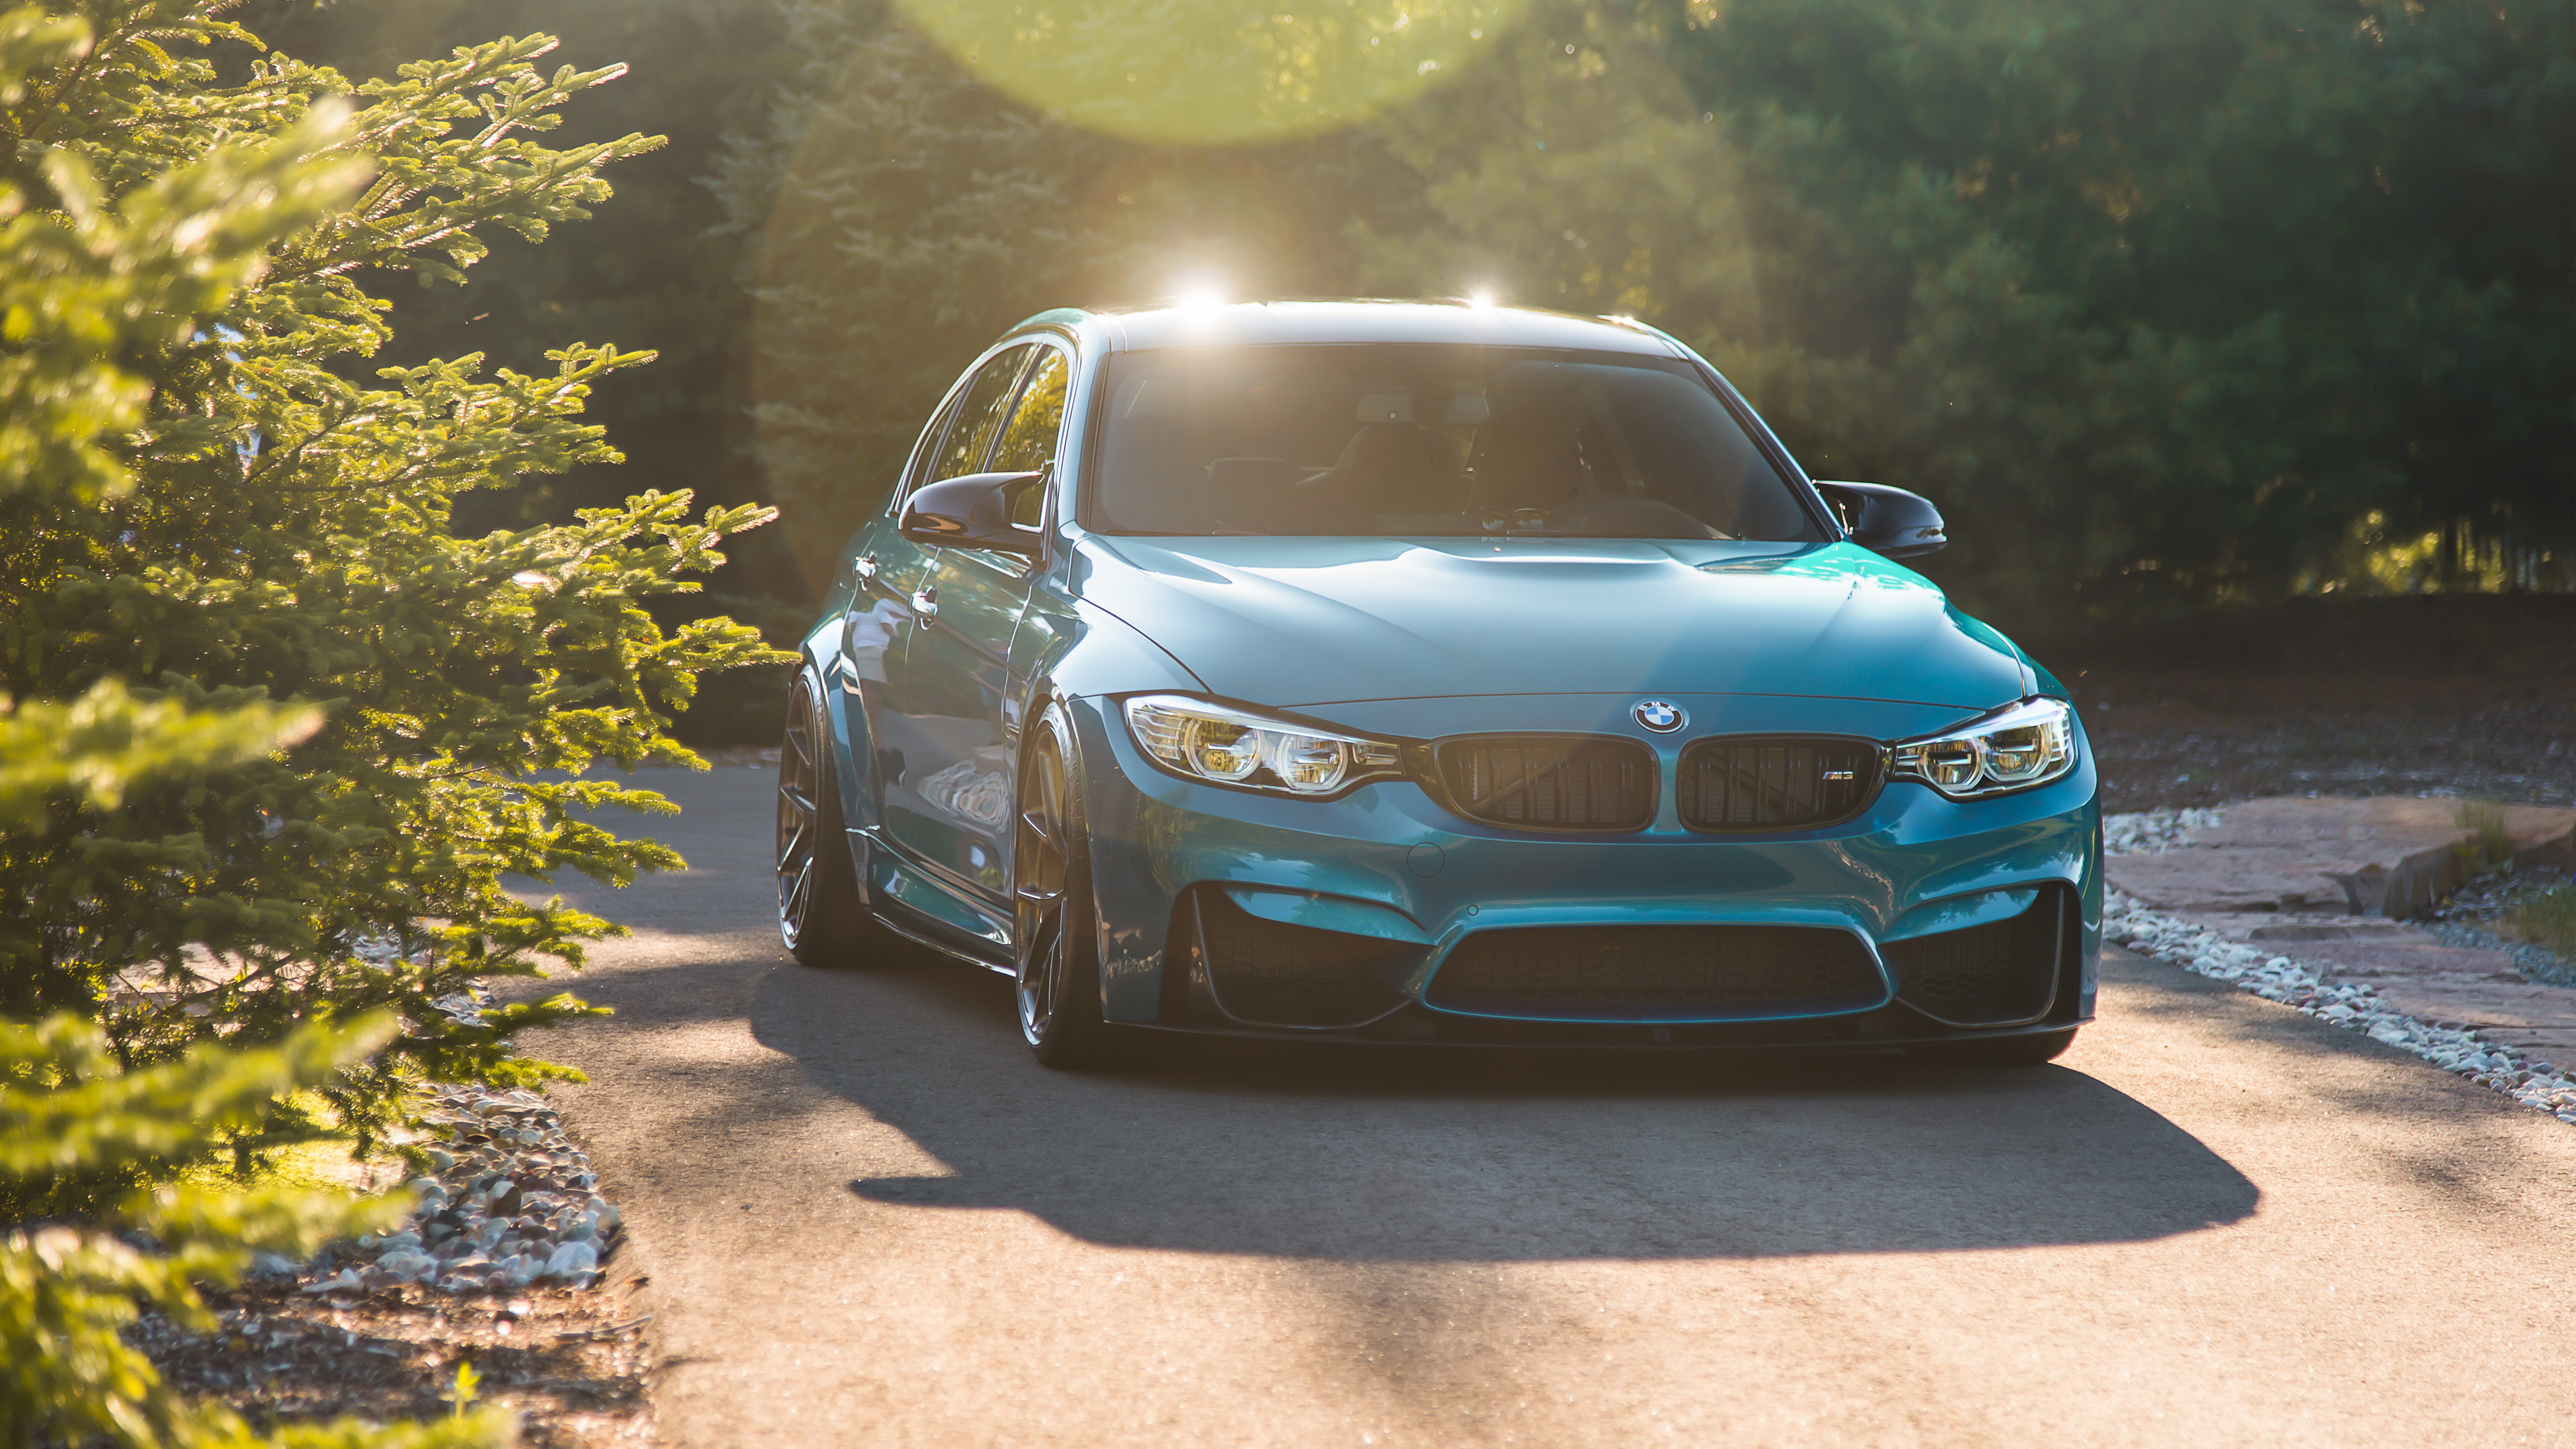 720x1280 download supreme car wallpaper by srcots now. Download Wallpaper For 720x1280 Resolution Bmw M3 Sport 4k 5ksimilar Car Wallpapers Cars Wallpaper Better